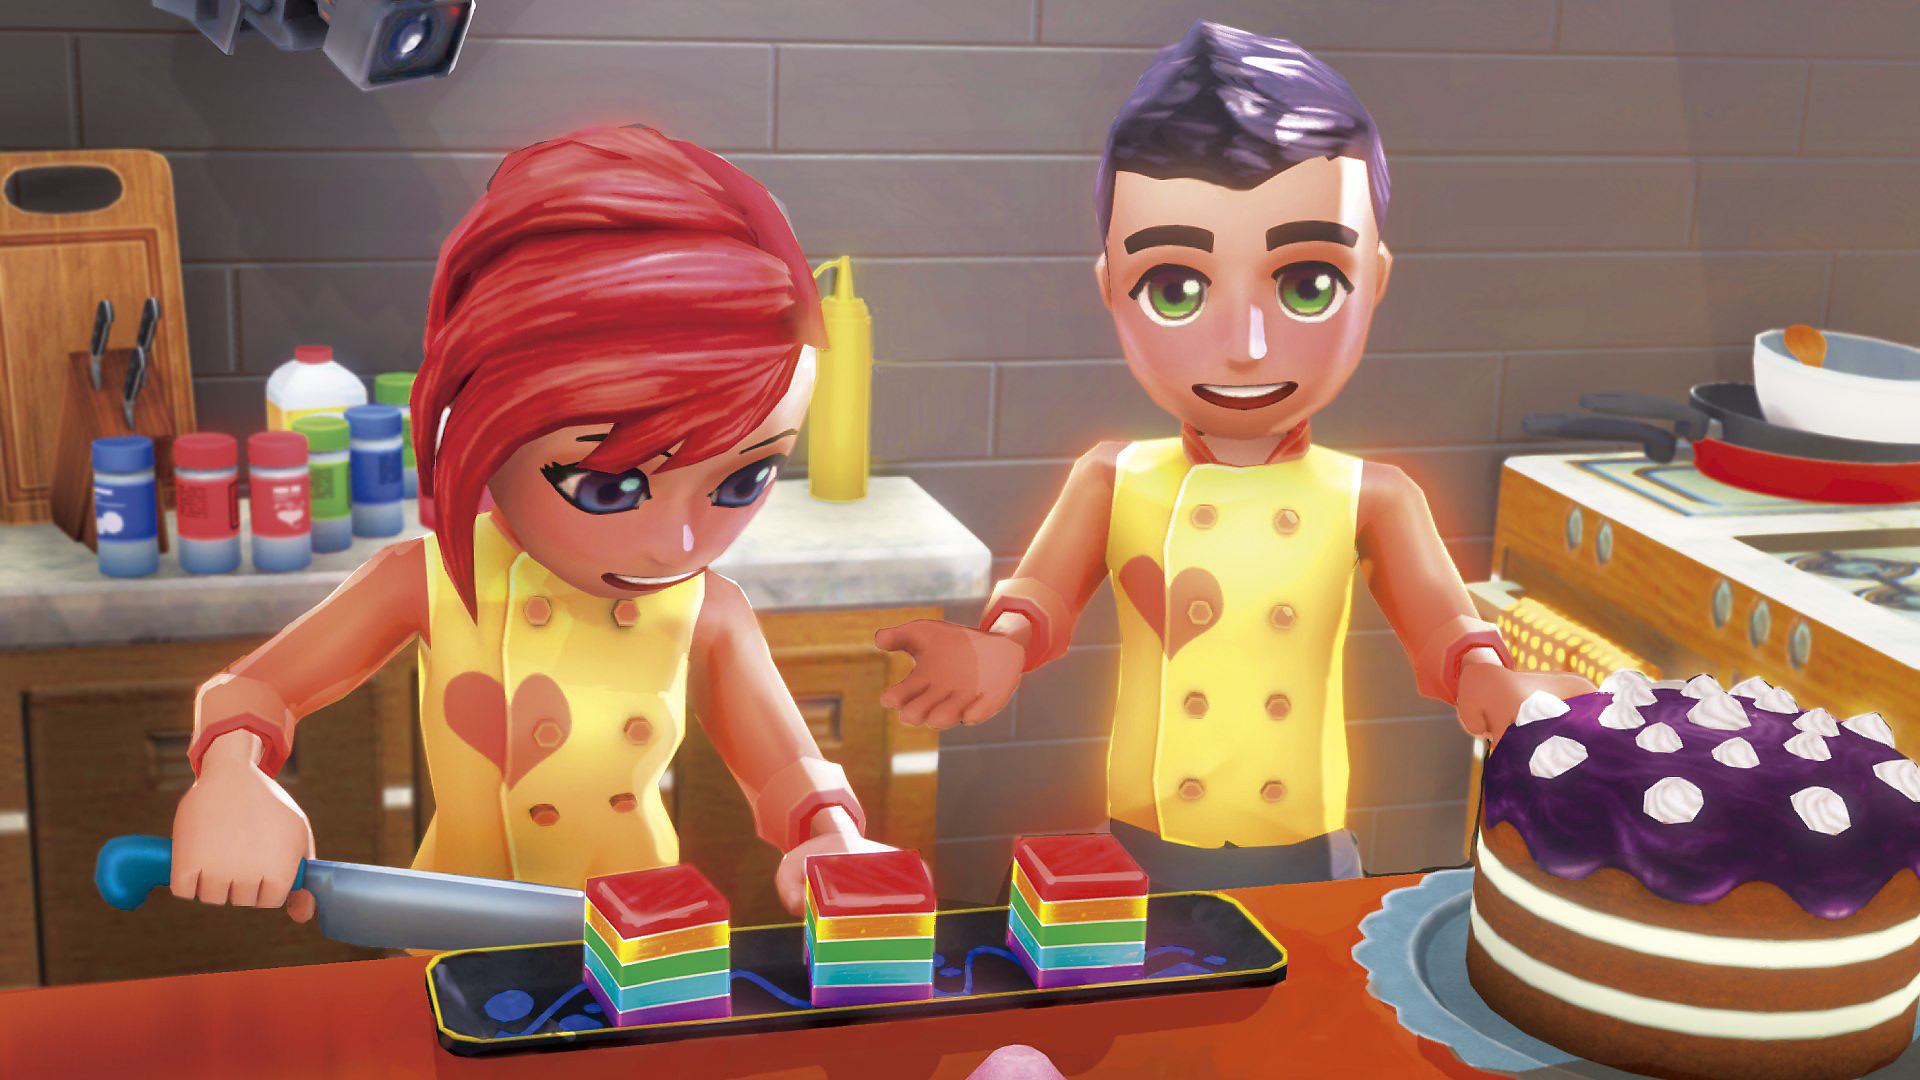 Two character baking and decorating